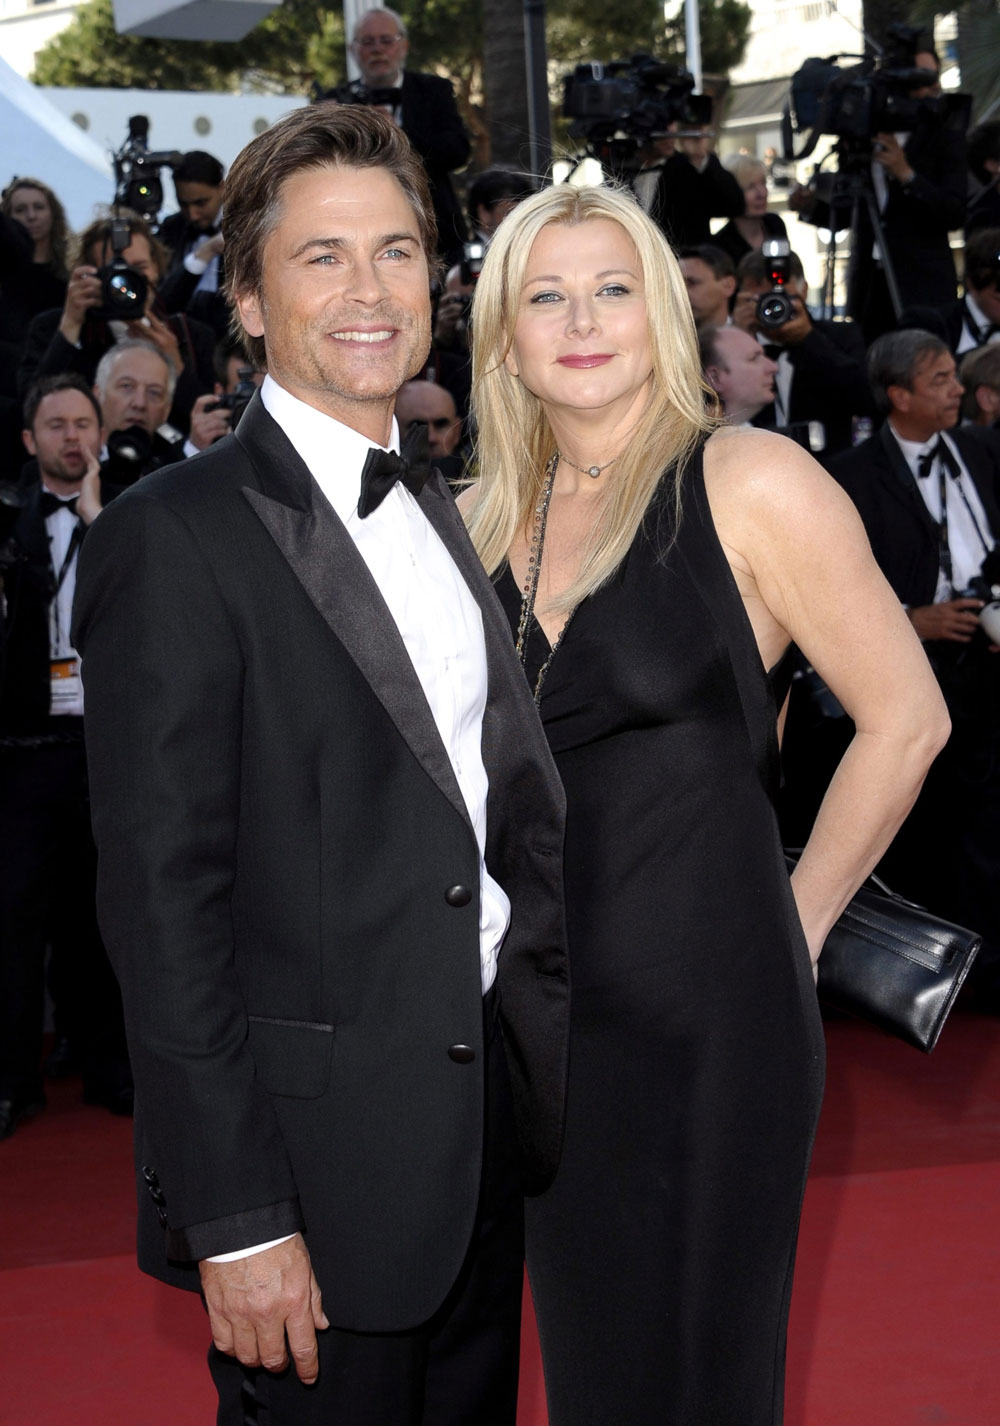 Il red carpet del film The tree of life. -  Dall'articolo: Cannes perde la testa per Malick.